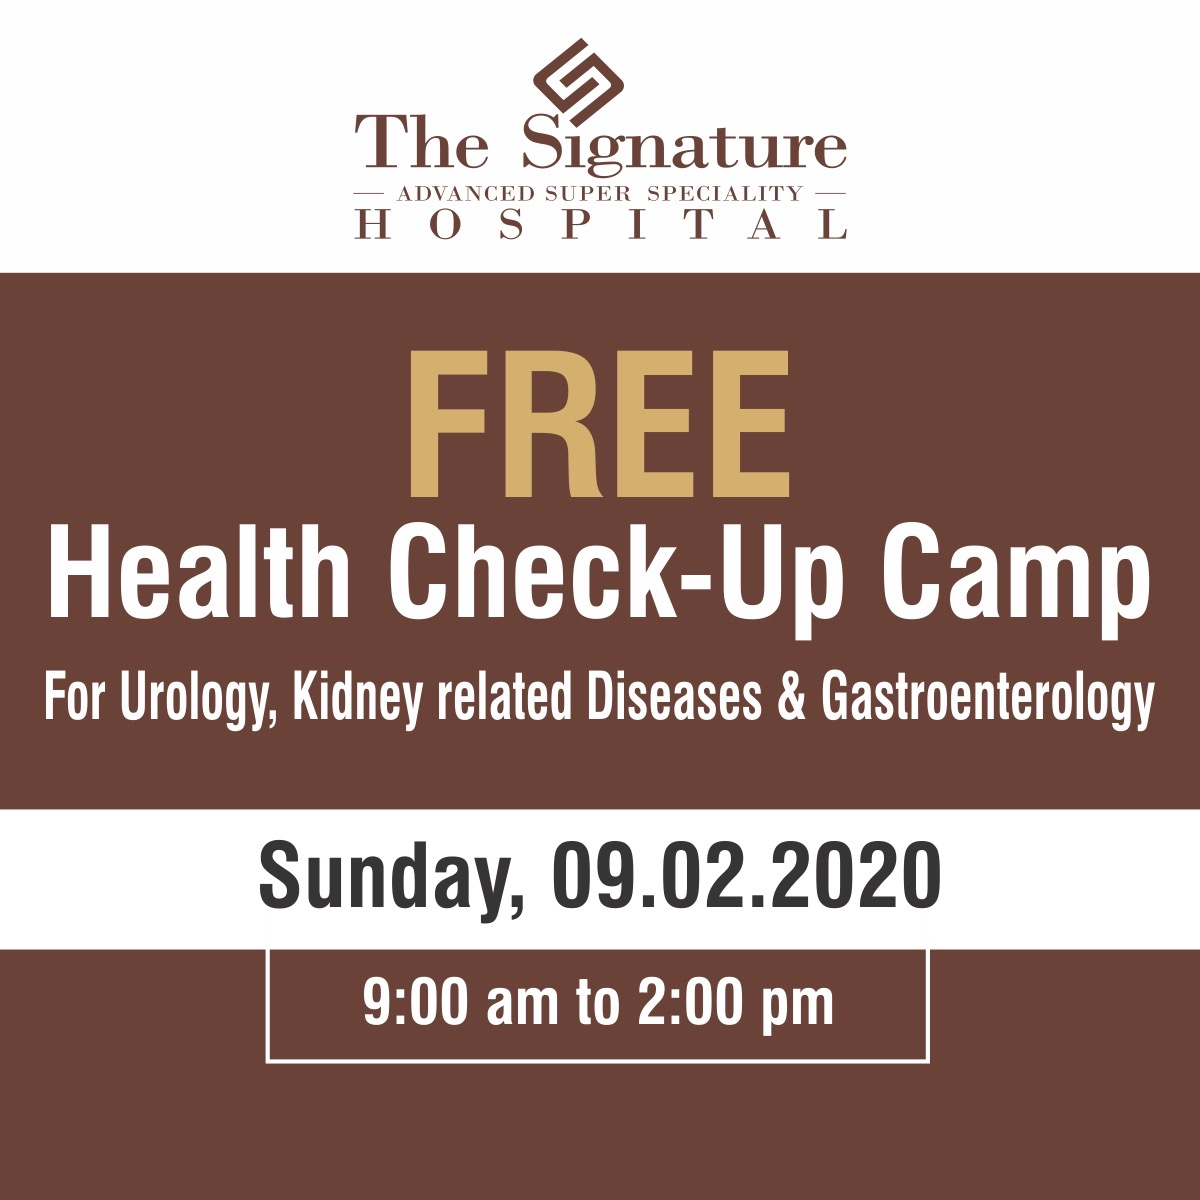 Free Medical Camp for Urology, Kidney related diseases and Gastroenterology